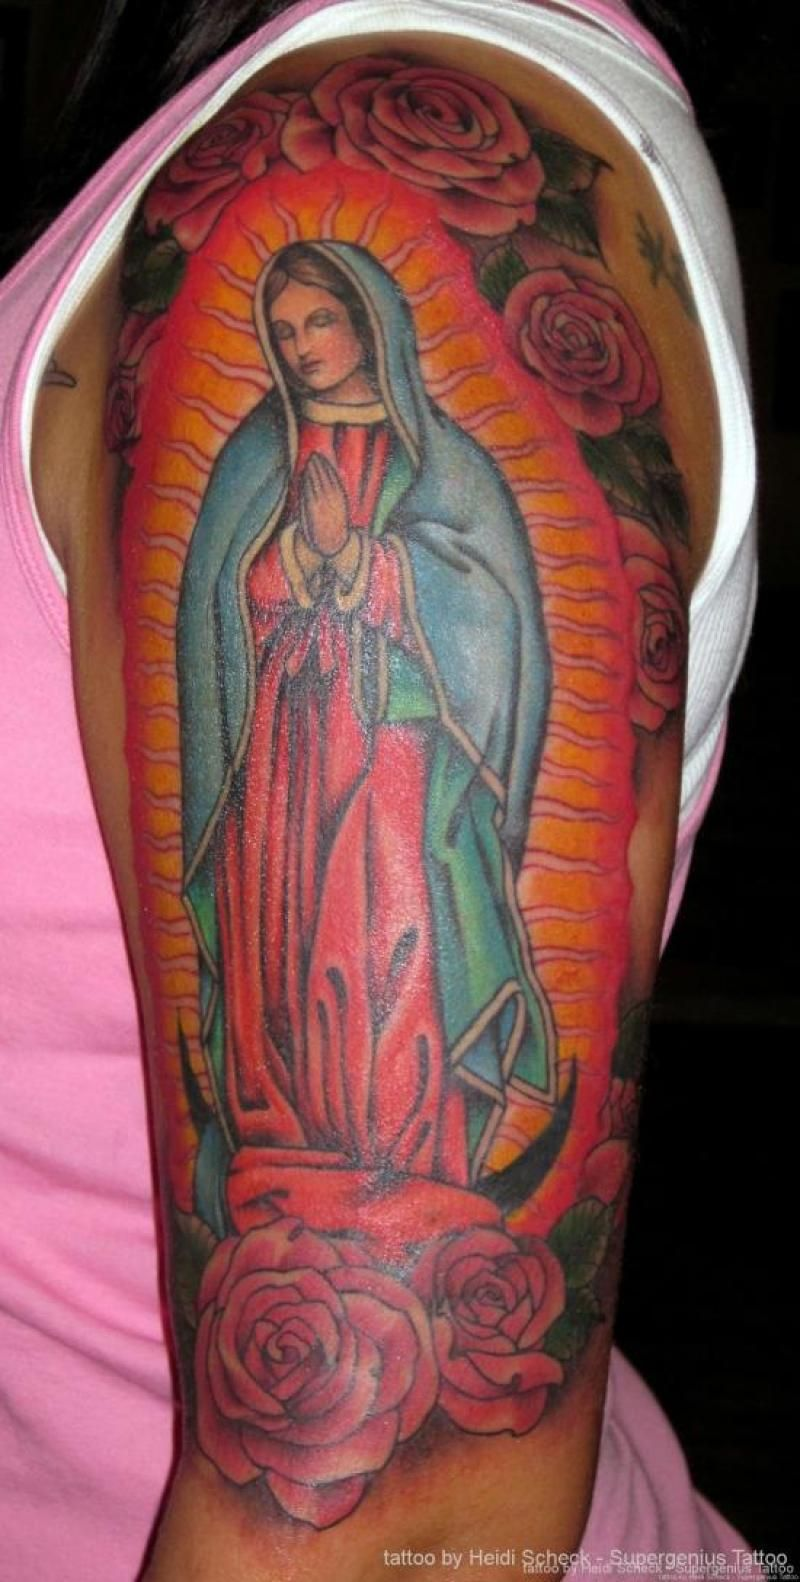 lady of guadalupe tattoo tattoos pinterest tattoo tatting and piercings. Black Bedroom Furniture Sets. Home Design Ideas